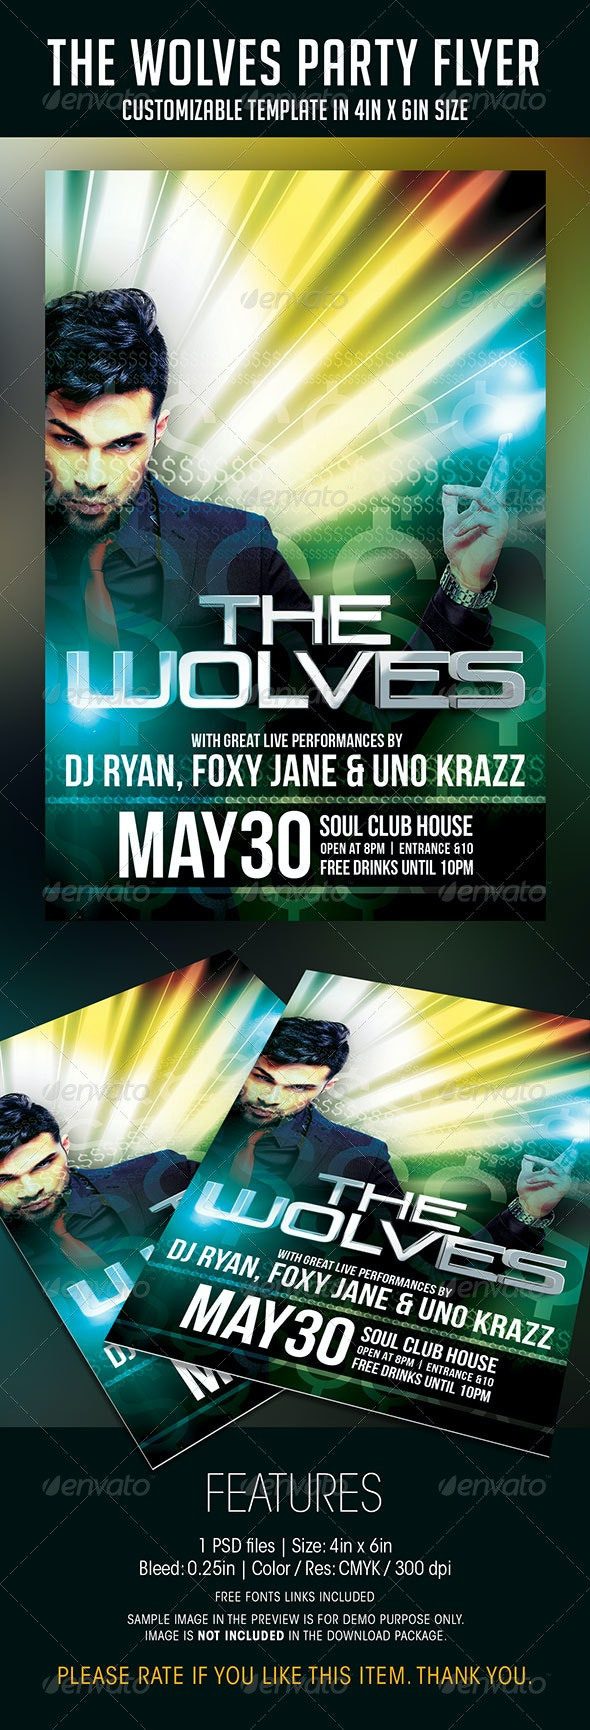 The Wolves Party Flyer - Clubs & Parties Events